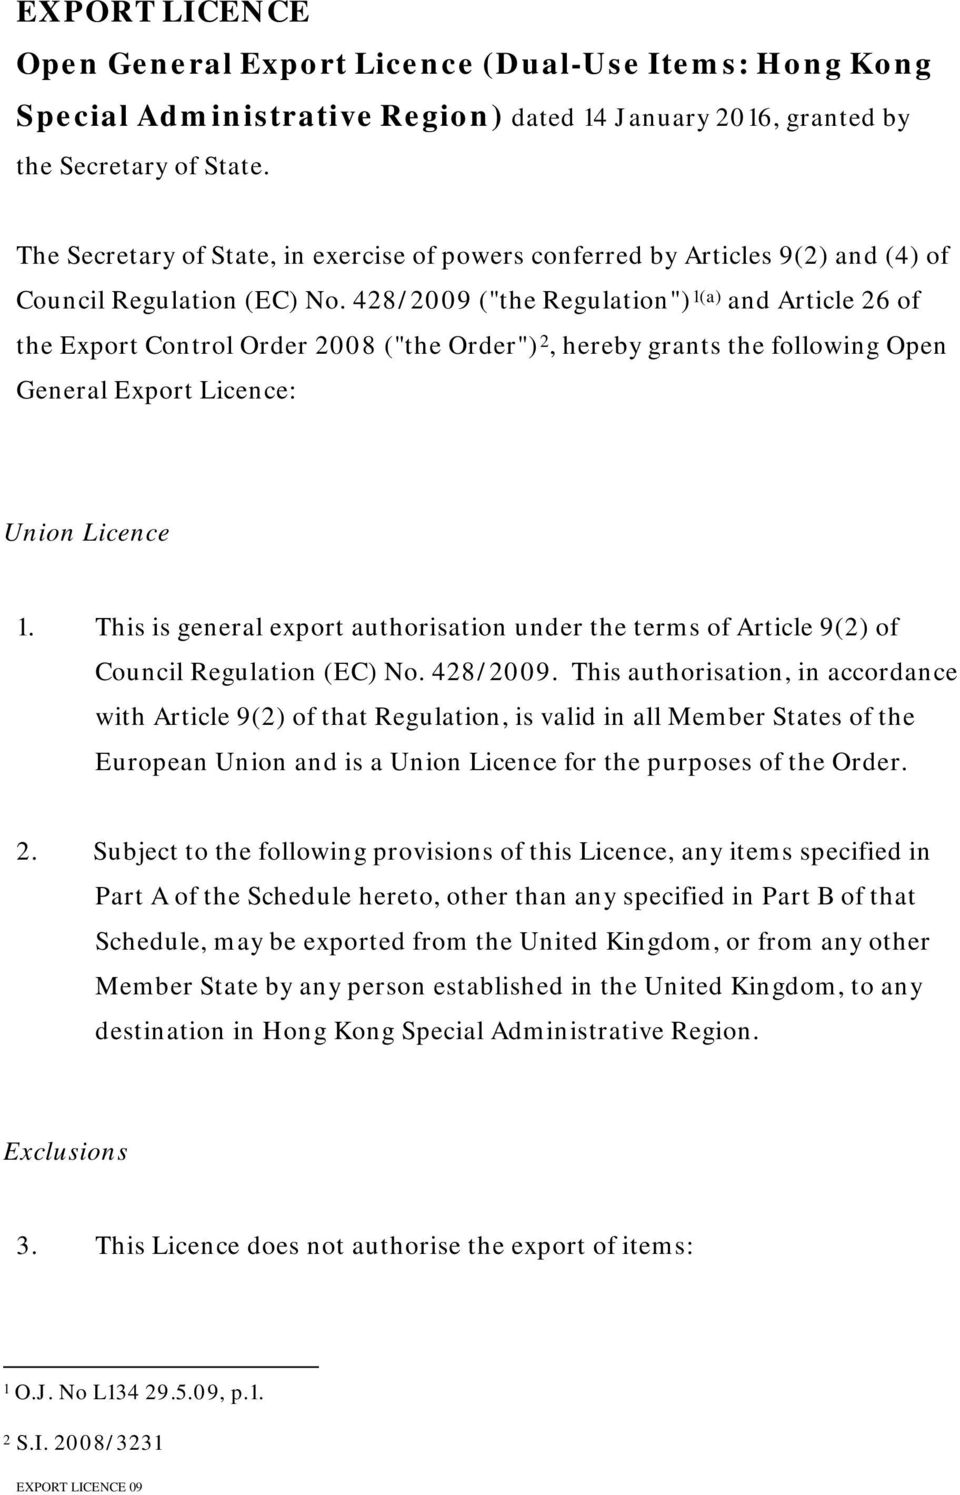 "428/2009 (""the Regulation"") 1(a) and Article 26 of the Export Control Order 2008 (""the Order"") 2, hereby grants the following Open General Export Licence: Union Licence 1."